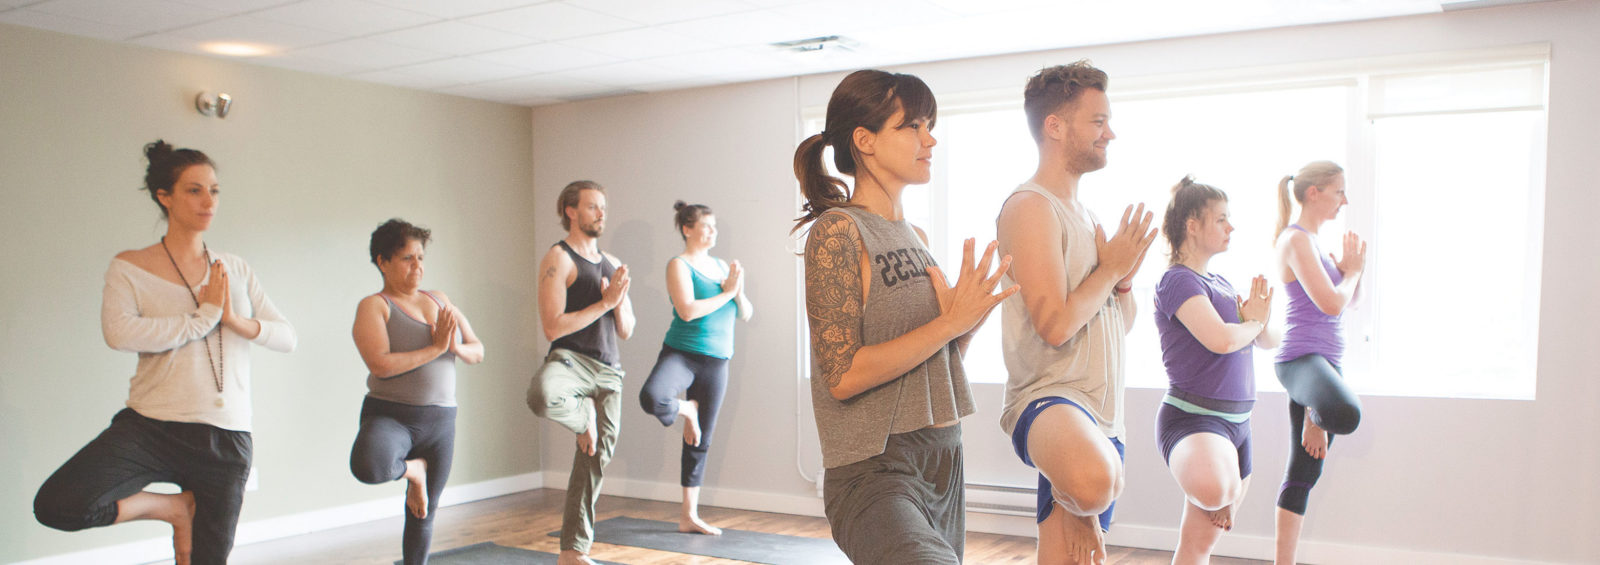 What is the importance of yoga in our daily life? 1